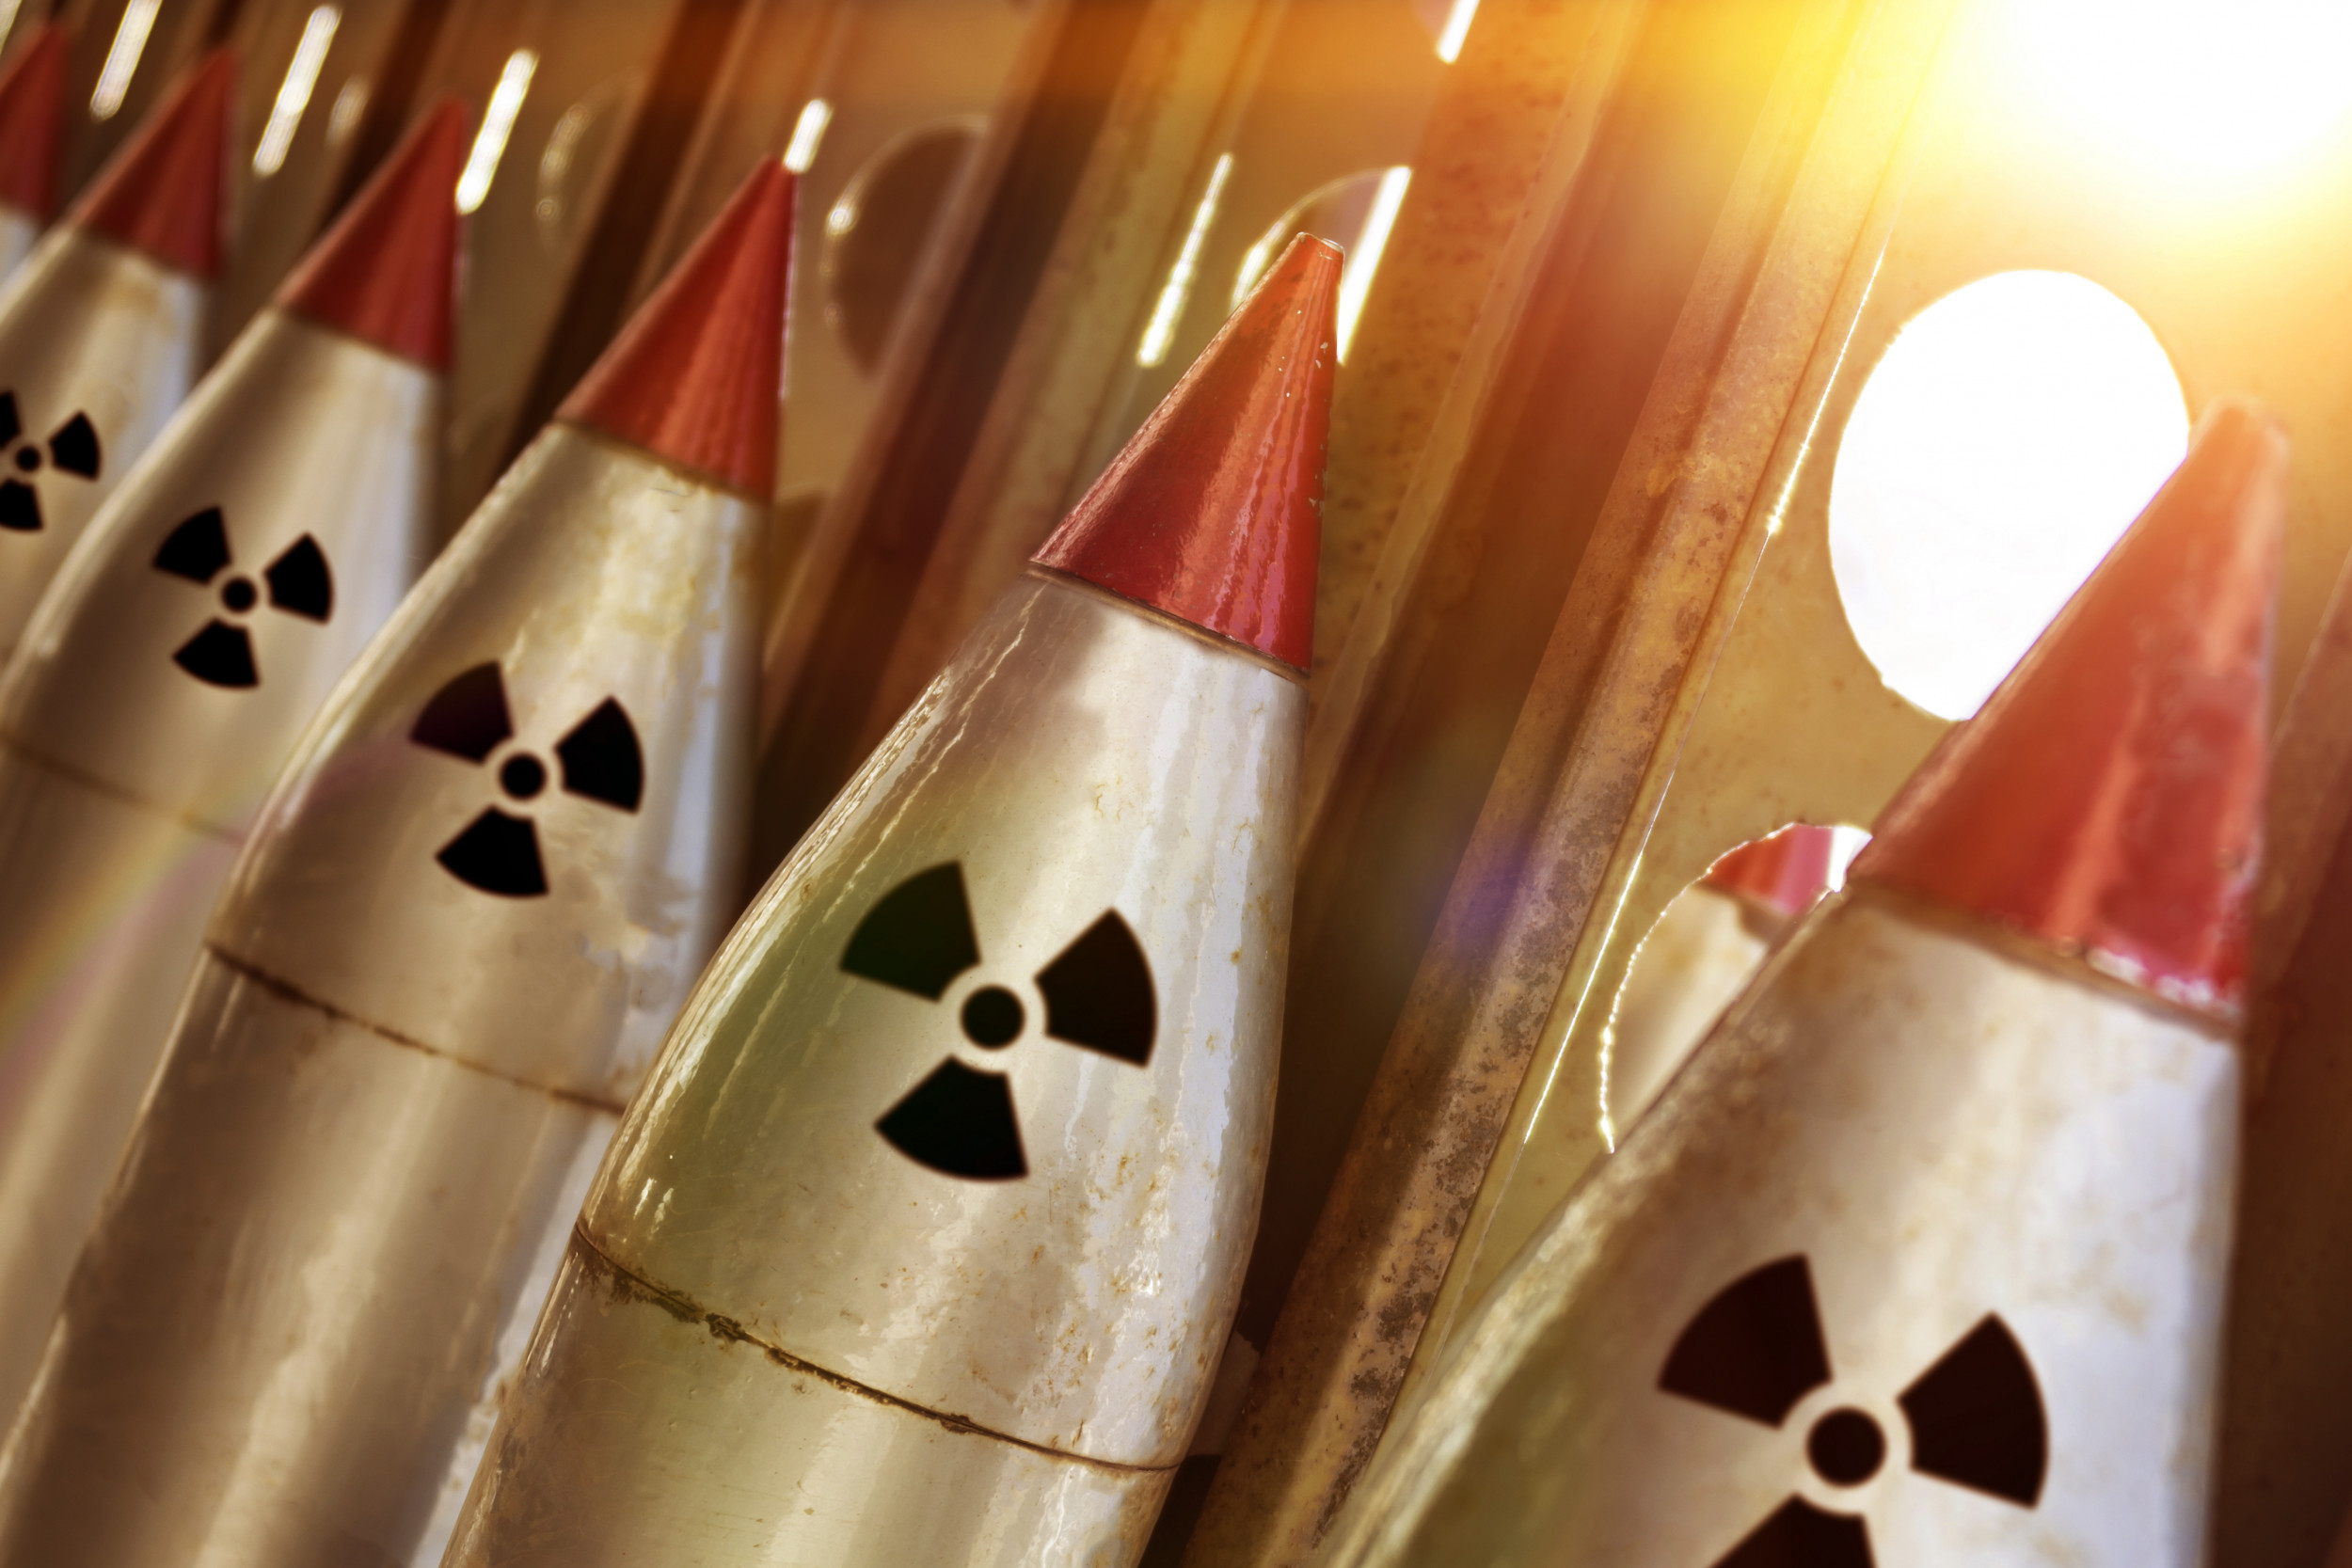 Universities across America profit from developing nuclear weapons. It's unconscionable | Opinion